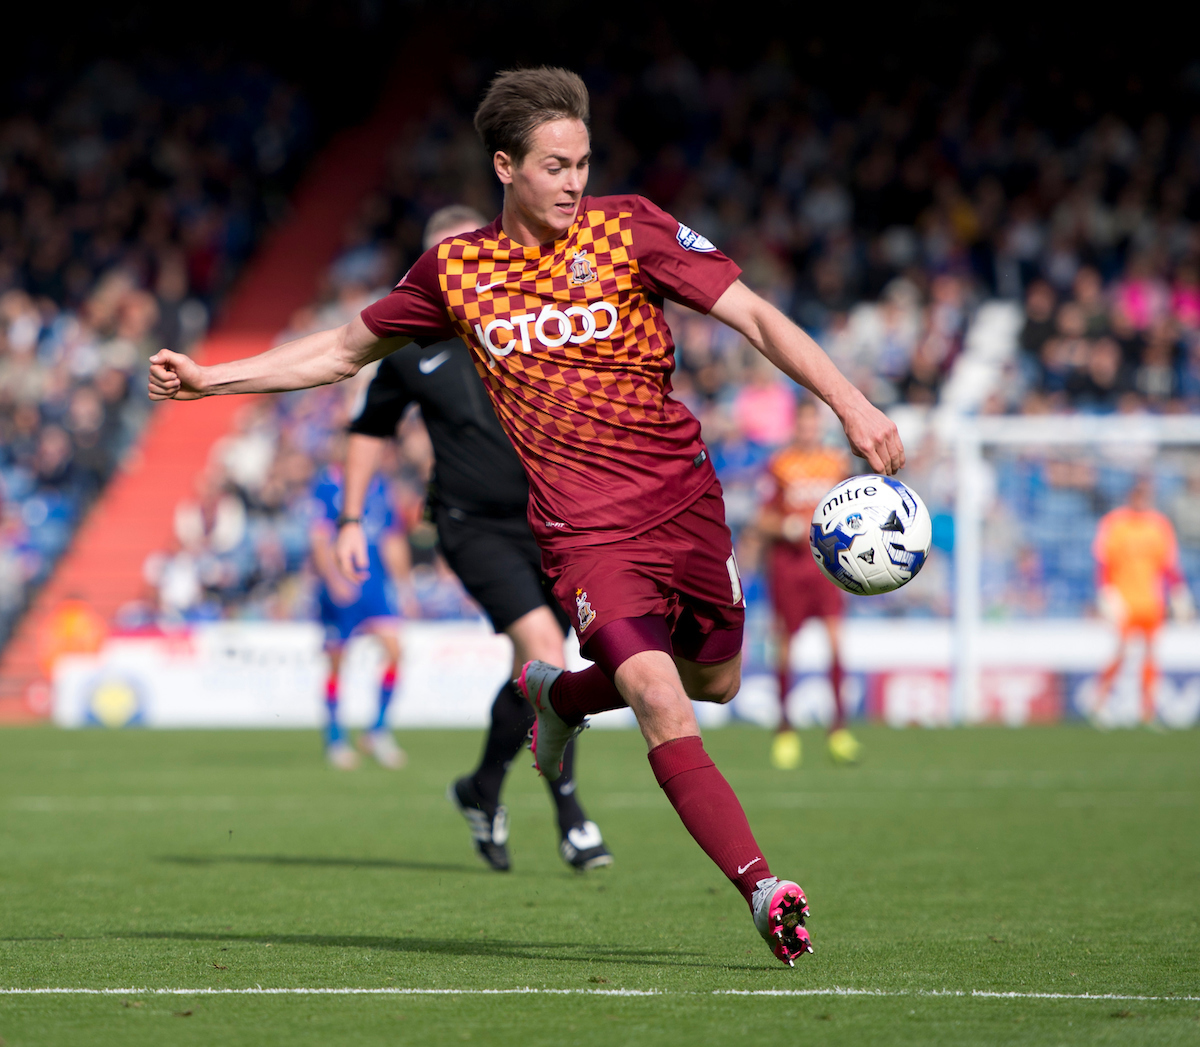 Josh Morris of Bradford City prepares to shoot during the Sky Bet League 1 match at Boundary Park, Oldham Picture by Russell Hart/Focus Images Ltd 07791 688 420 05/09/2015